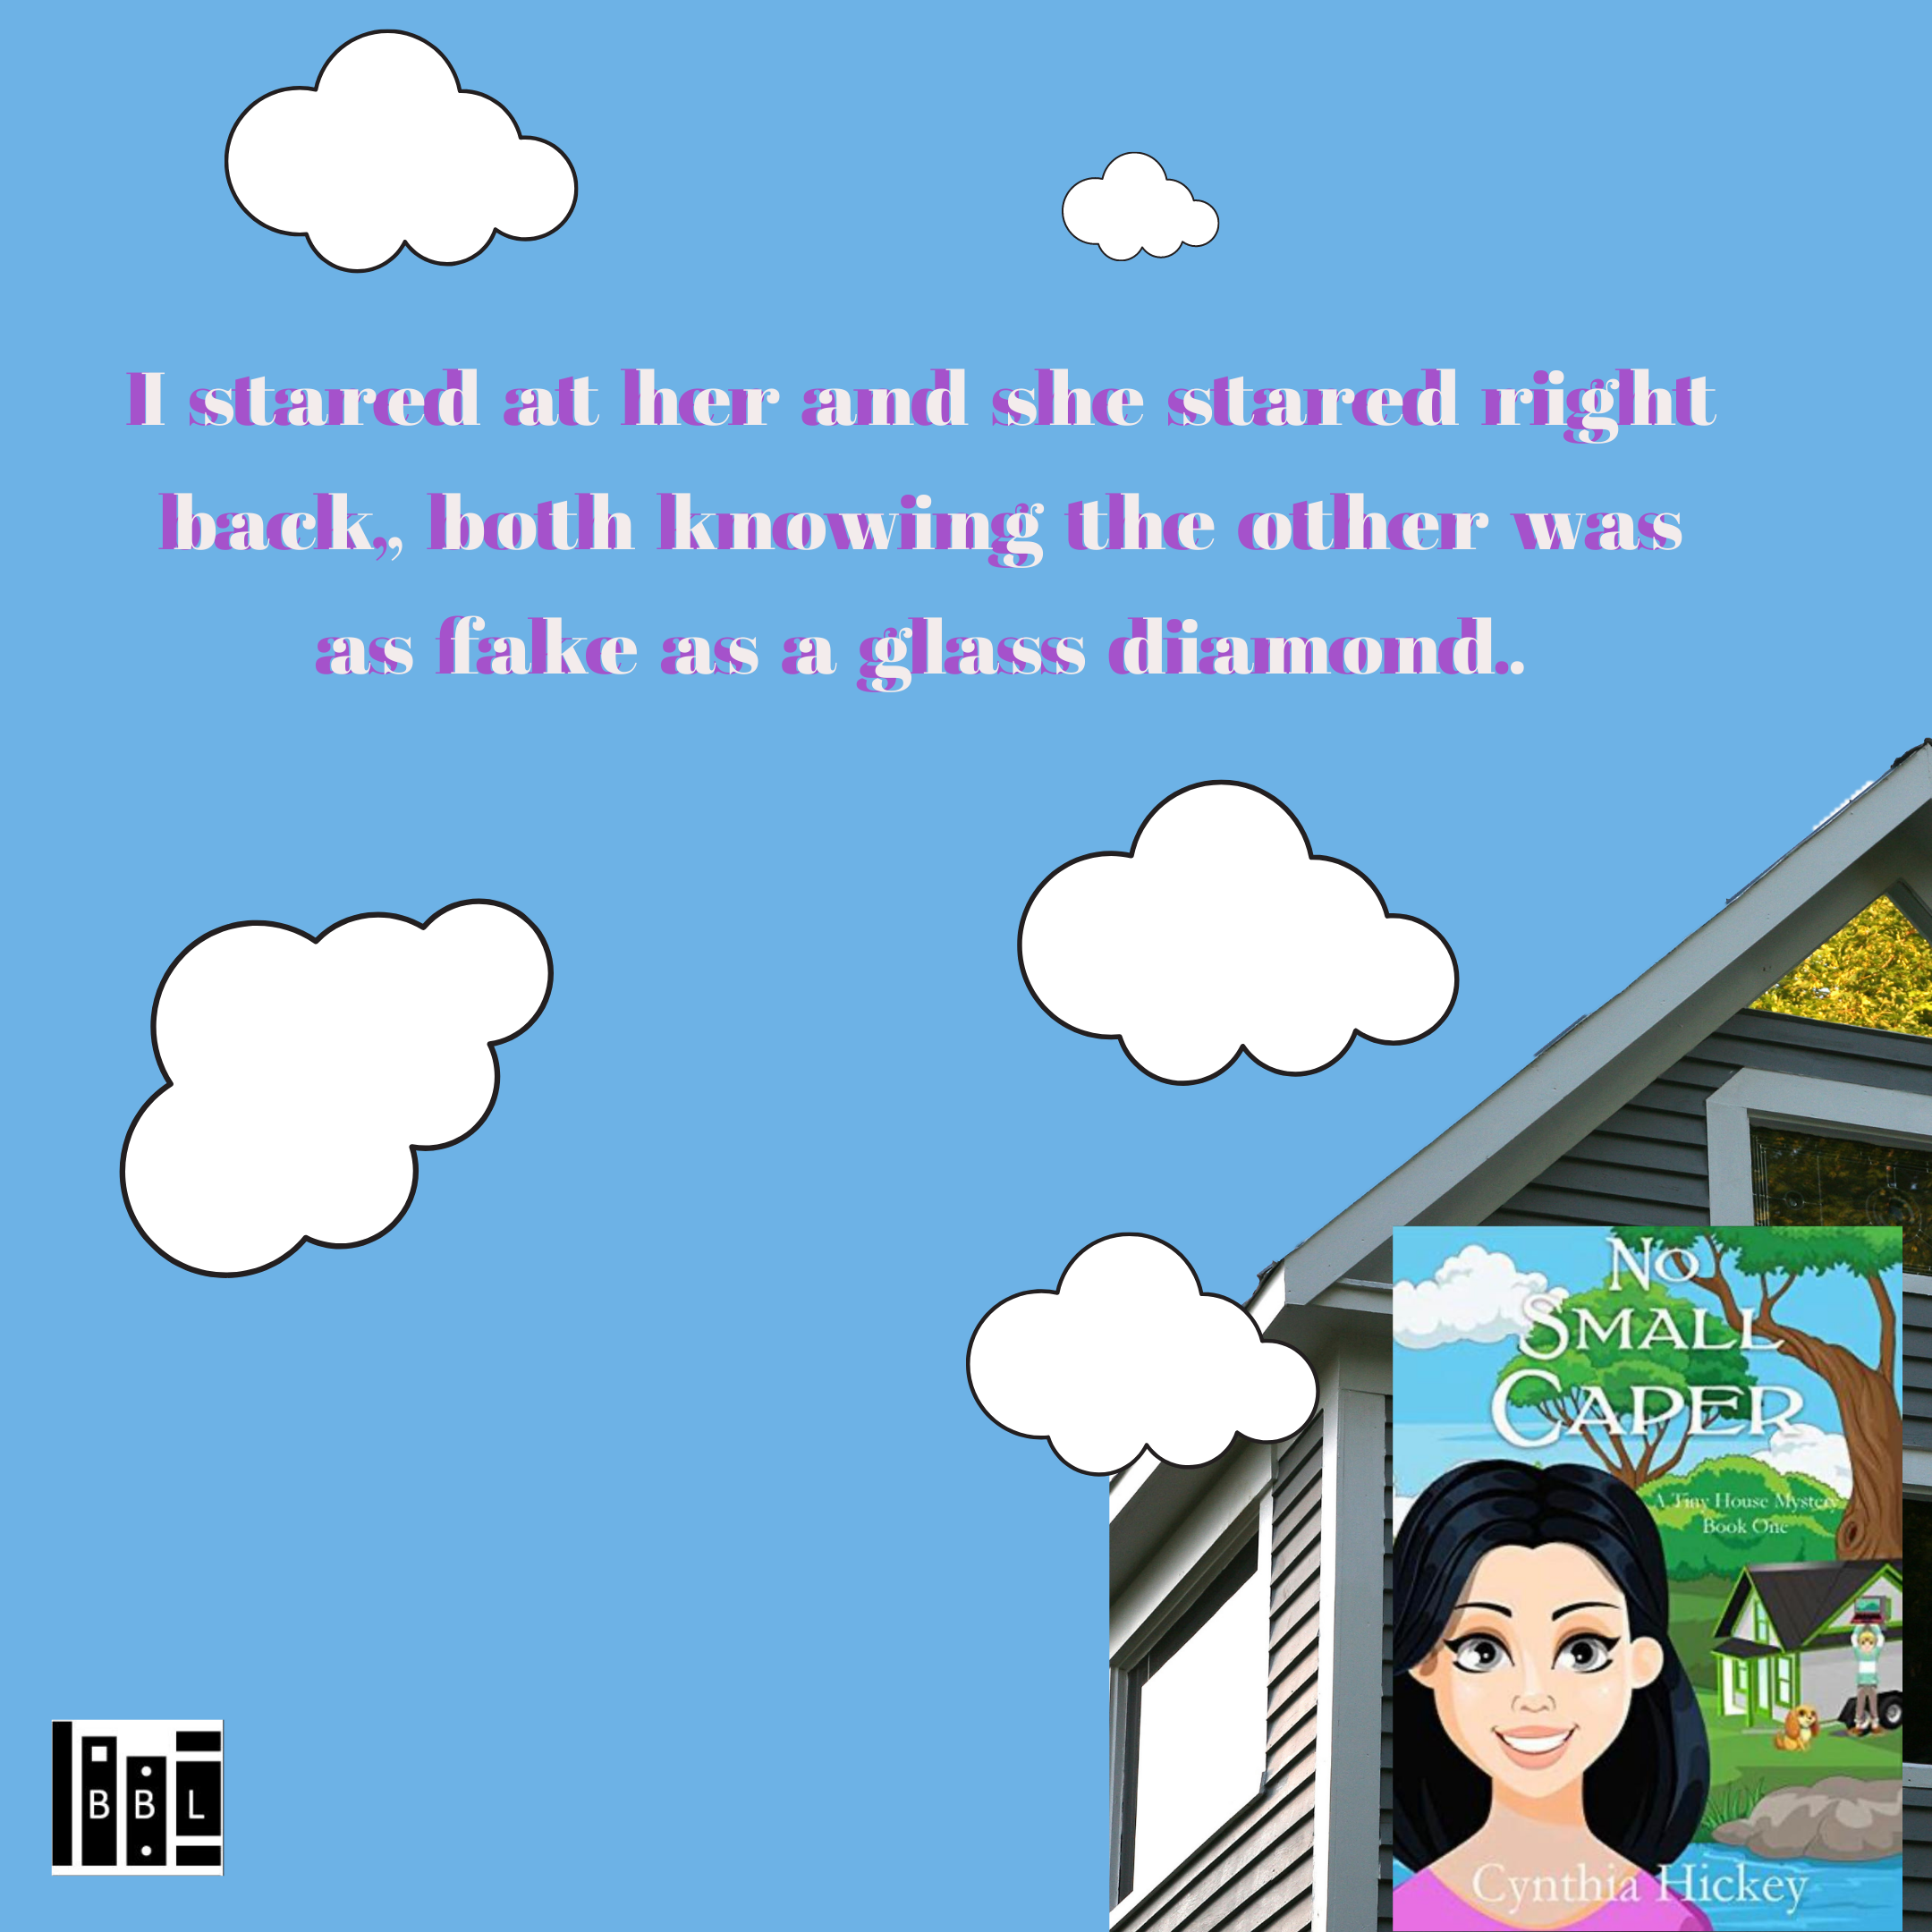 i stared at her and she stared right back both knowing the other was as fake as a glass diamond.